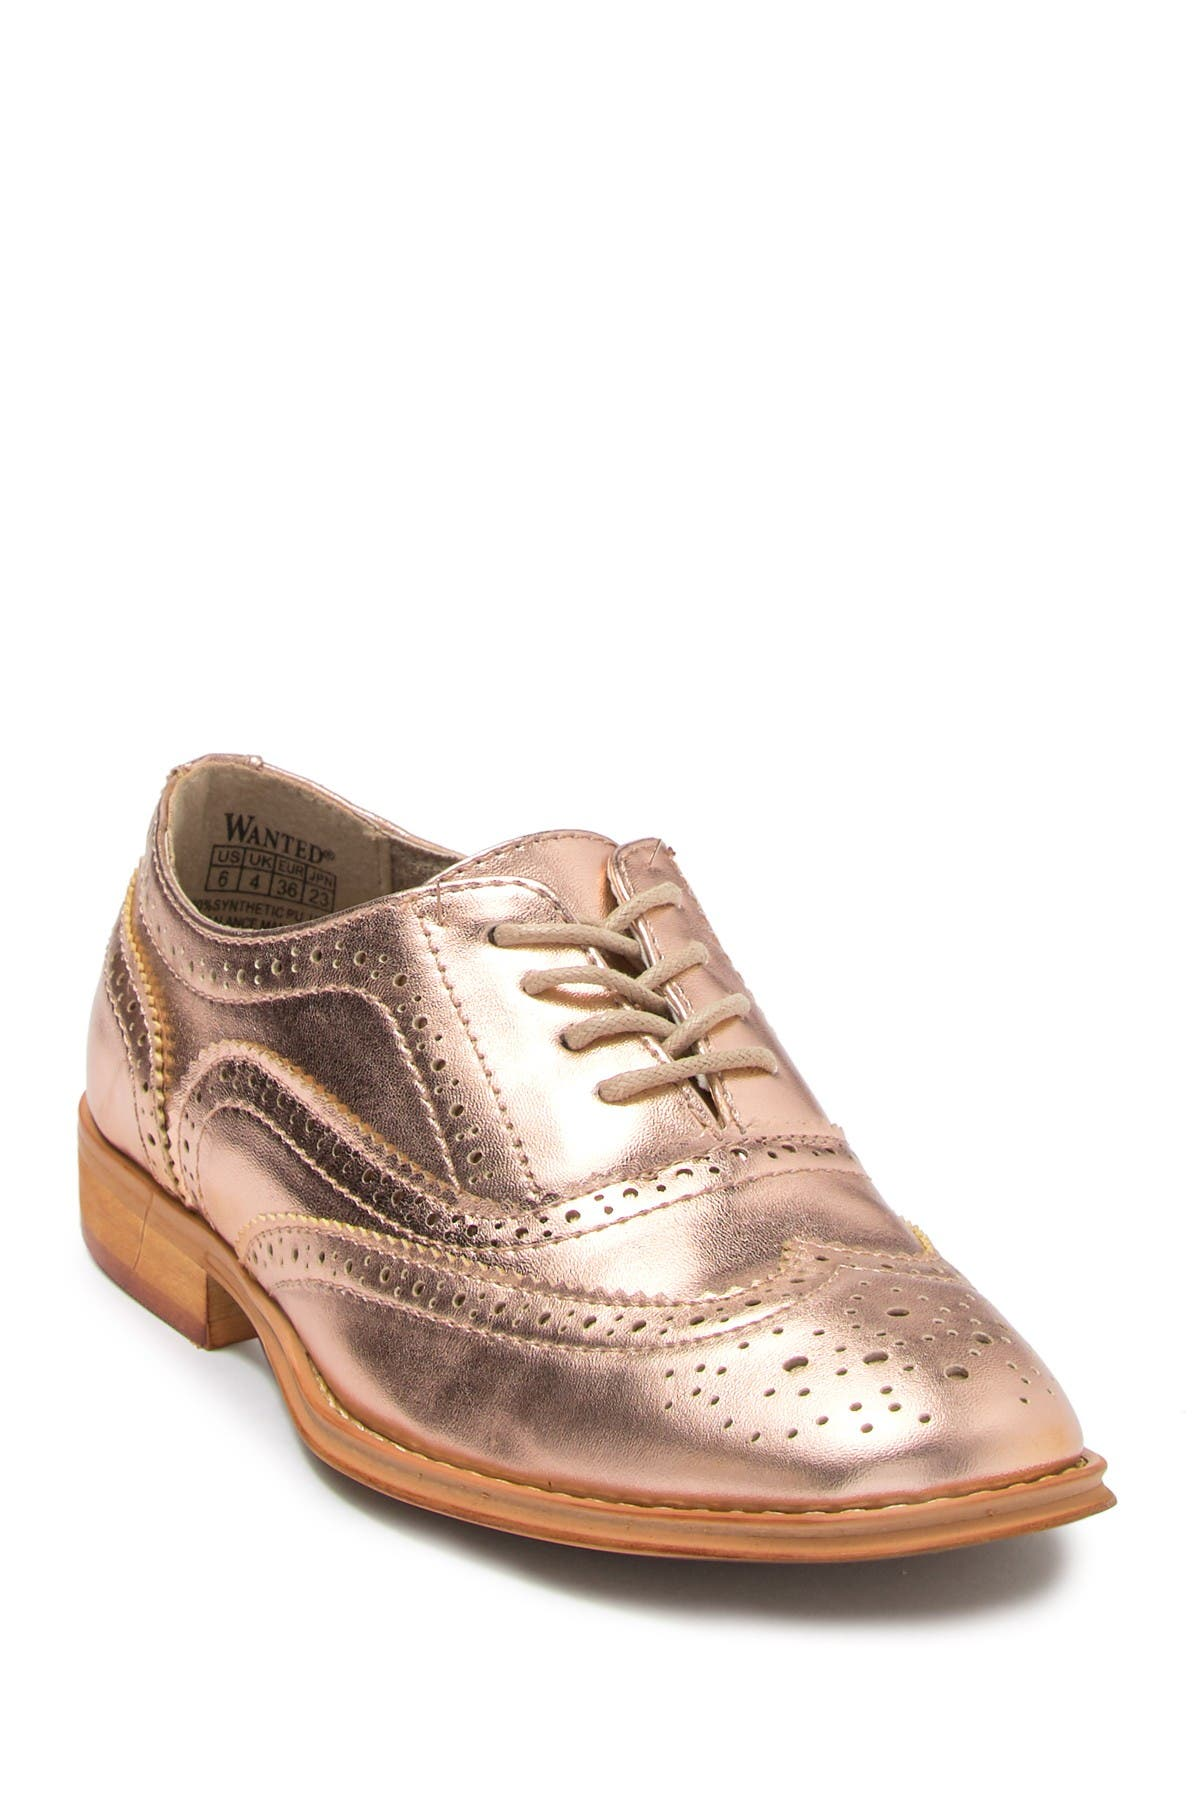 Image of Wanted Babe Wingtip Oxford